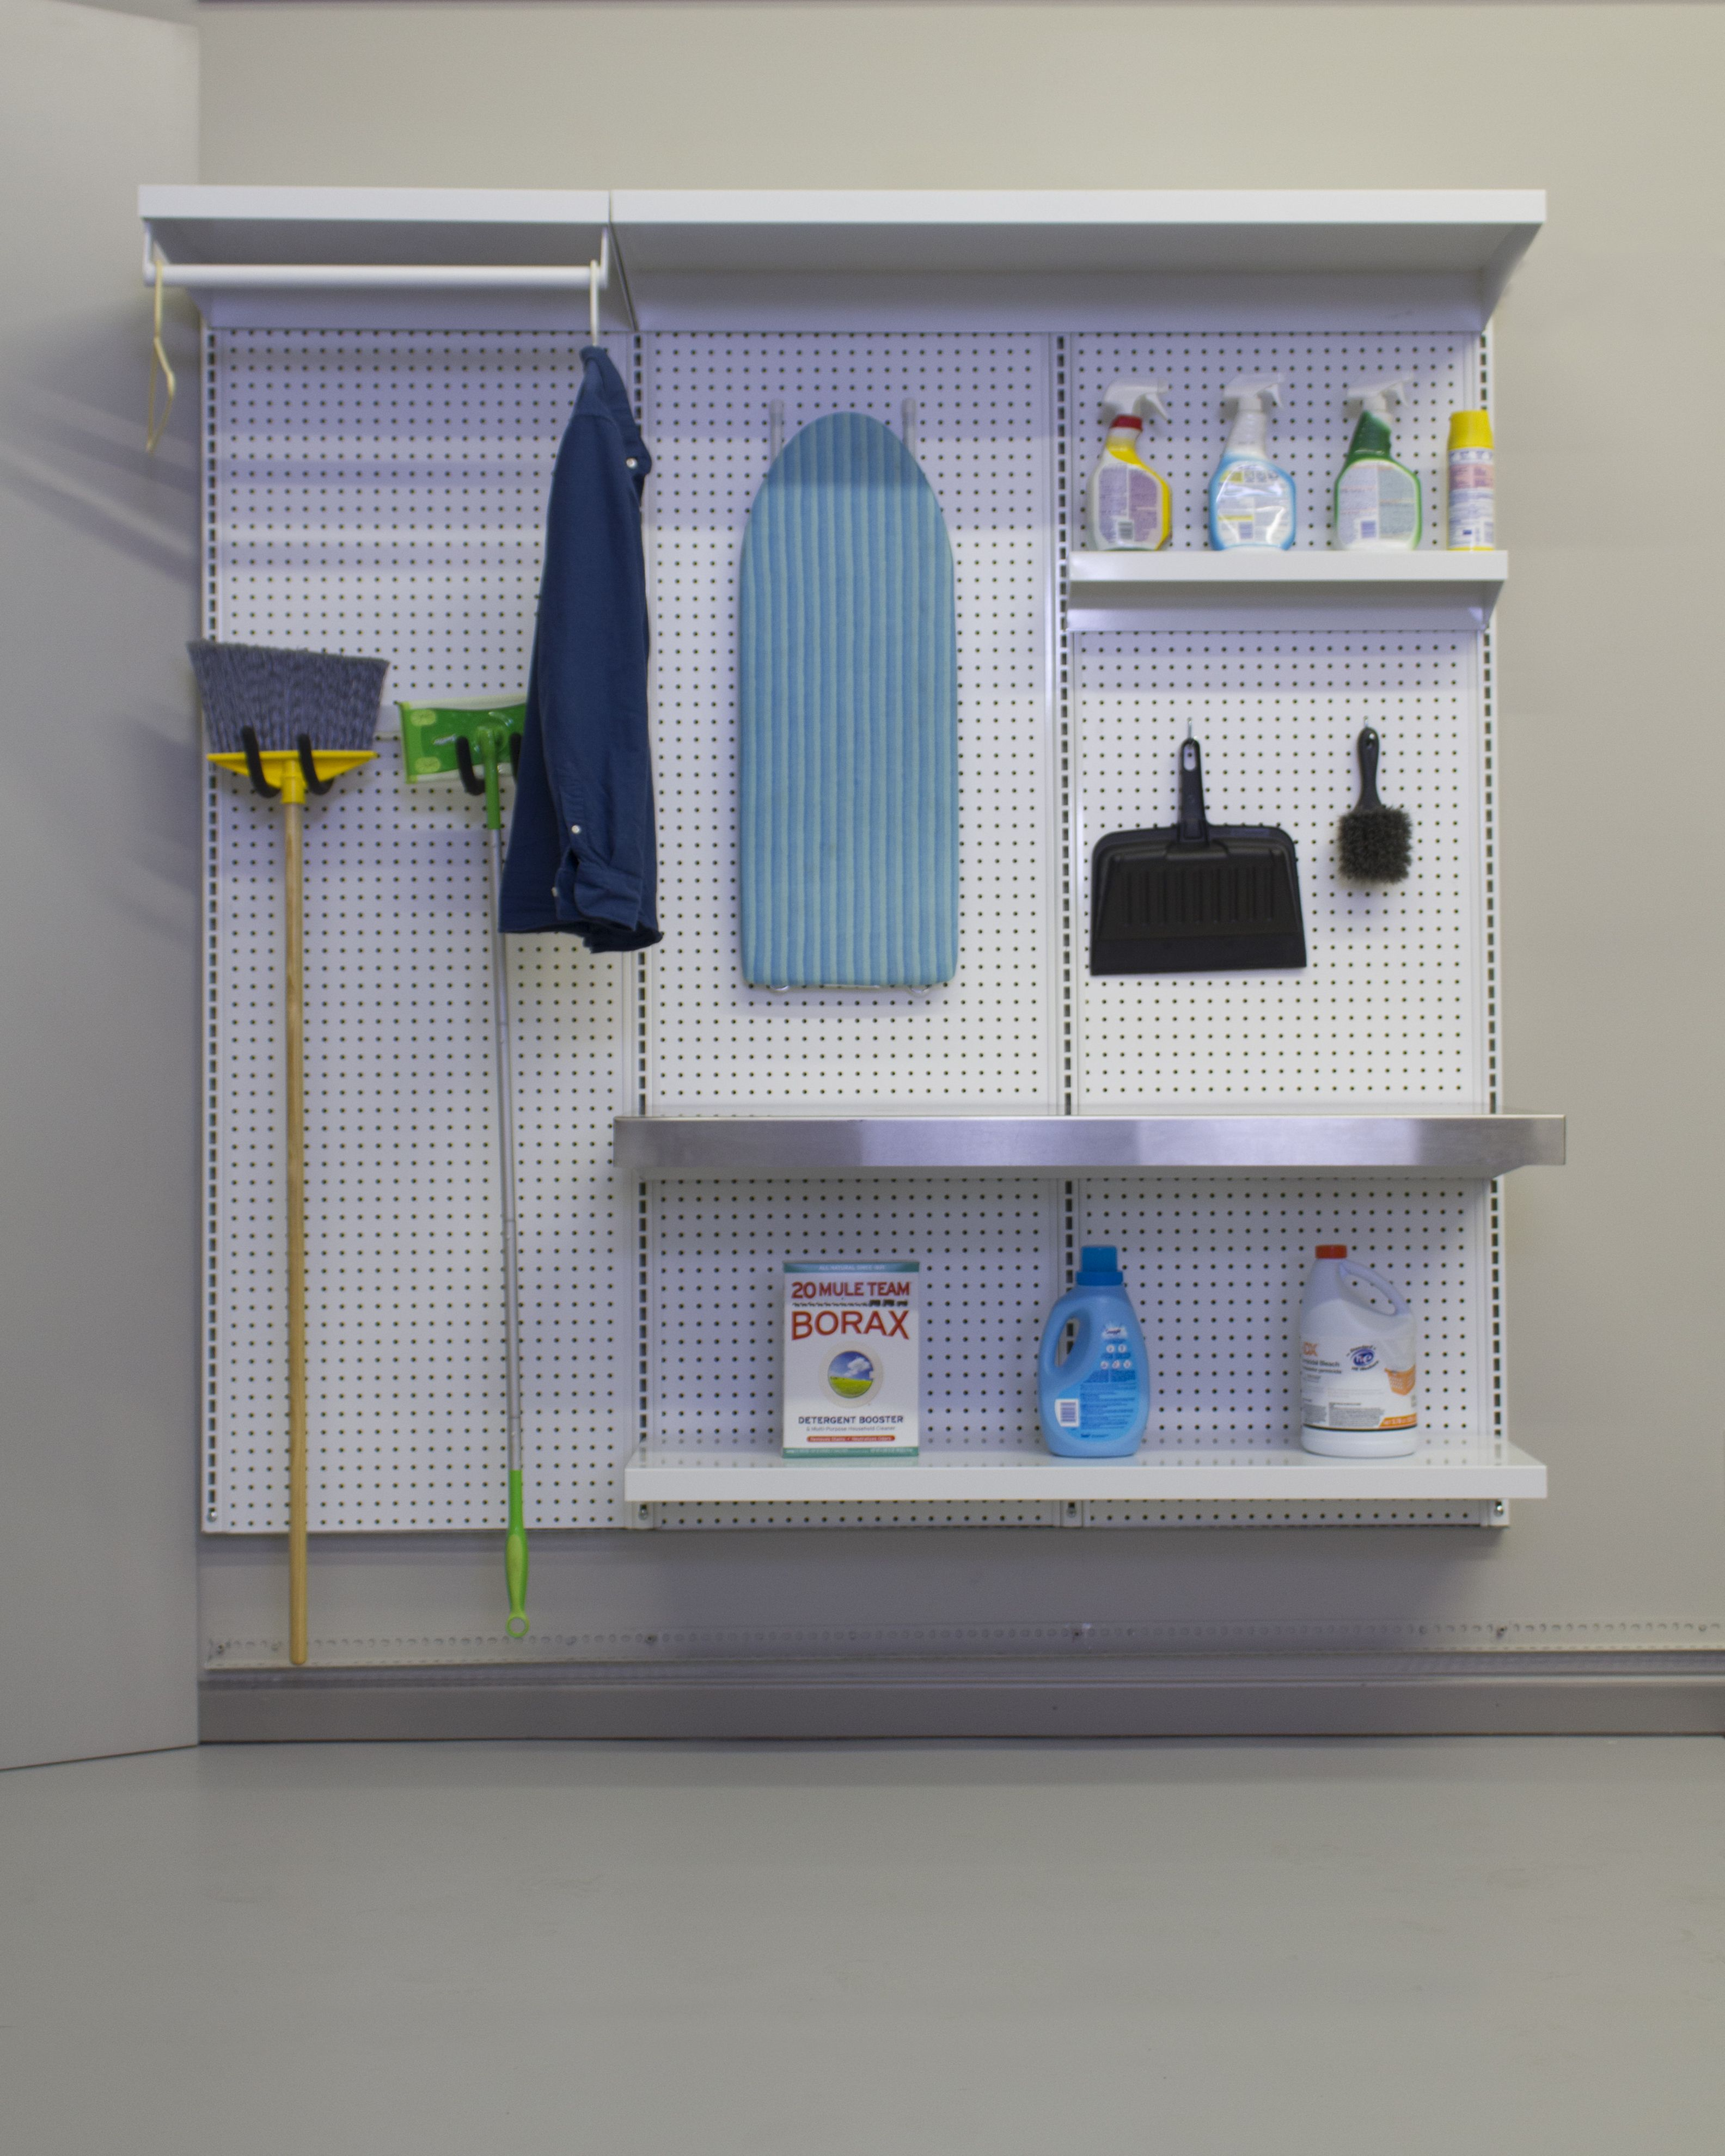 Check out our laundry room kit. It includes a stainless counter for folding clothes and a clothes rail to hang clothes. Go to https://shorewallsystems.com/catalog/6-laundry-kit to purchase your's today!